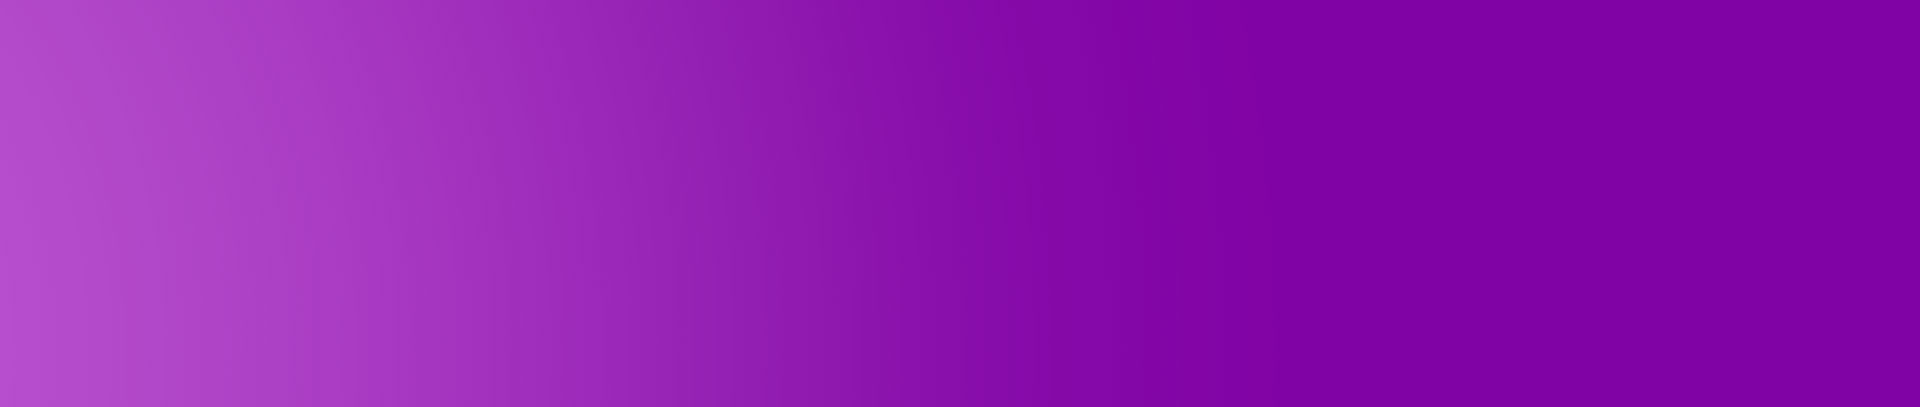 purple gradient background